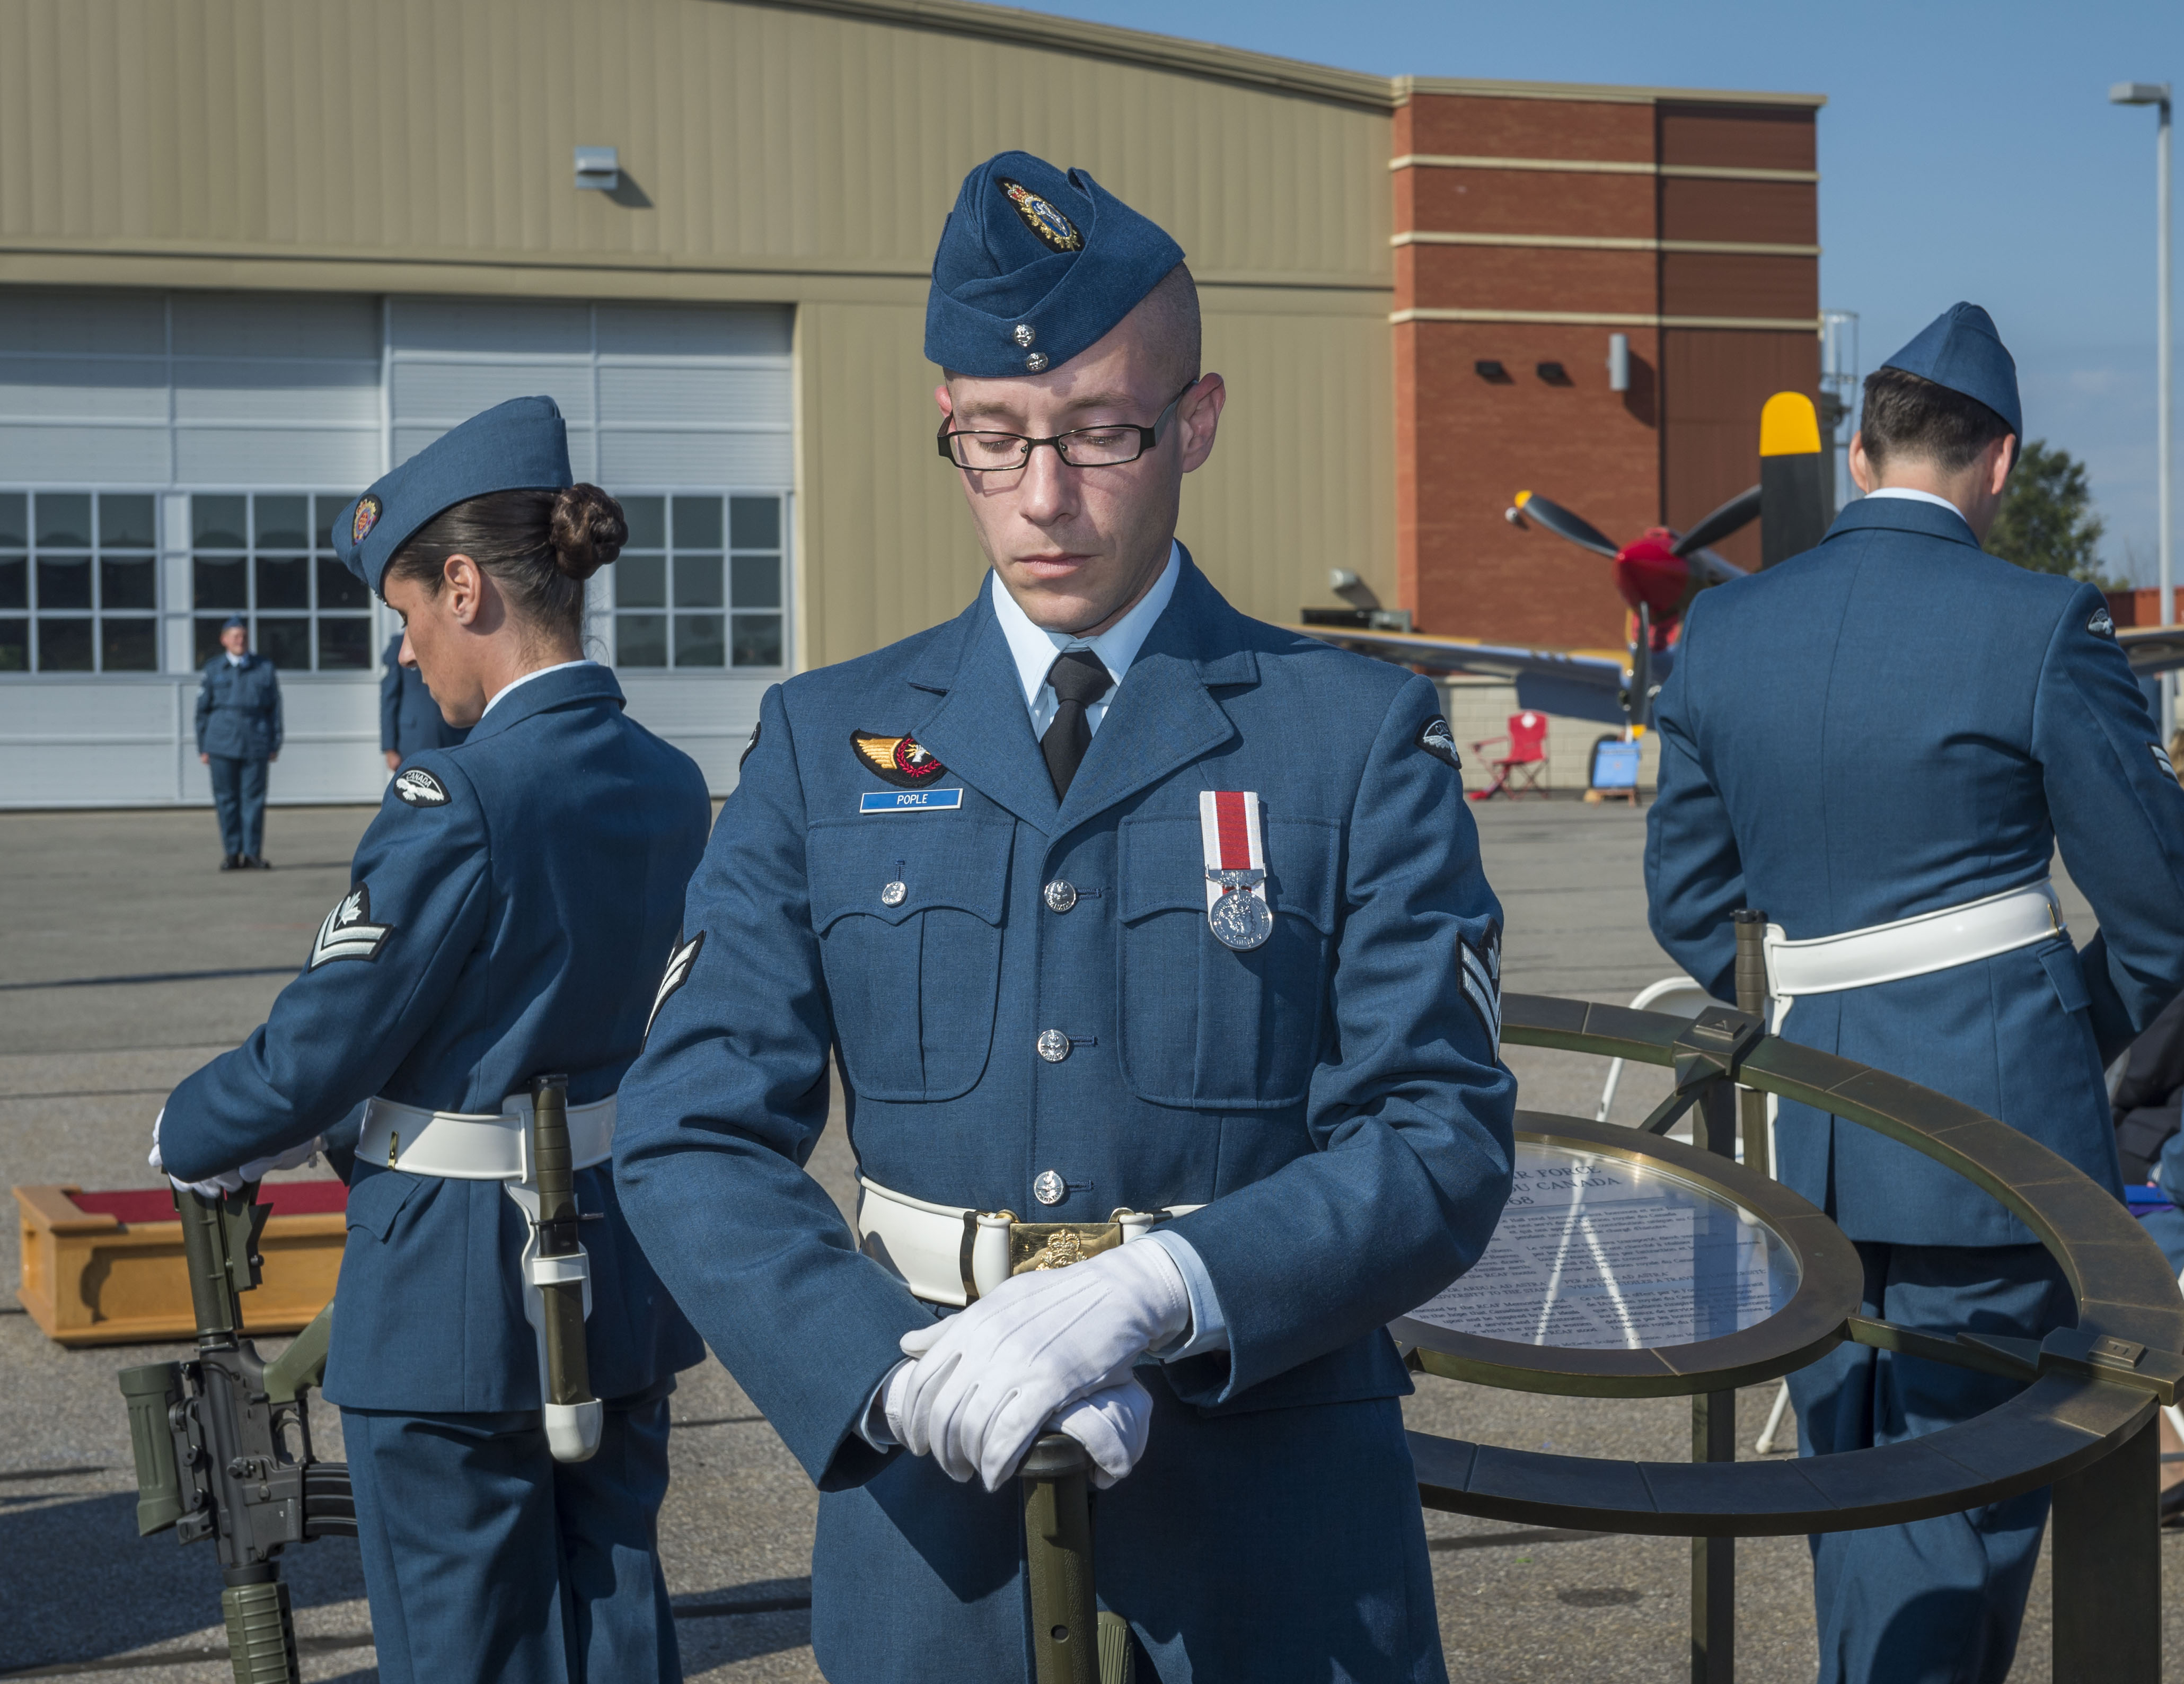 Master Corporal James Pople, standing with his head bowed and rifle reversed, was one of the four sentries surrounding the Cenotaph during the national Battle of Britain commemorative ceremony in Gatineau, Quebec, on September 17, 2017. PHOTO: Corporal Alana Morin, FA03-2017-0119-025